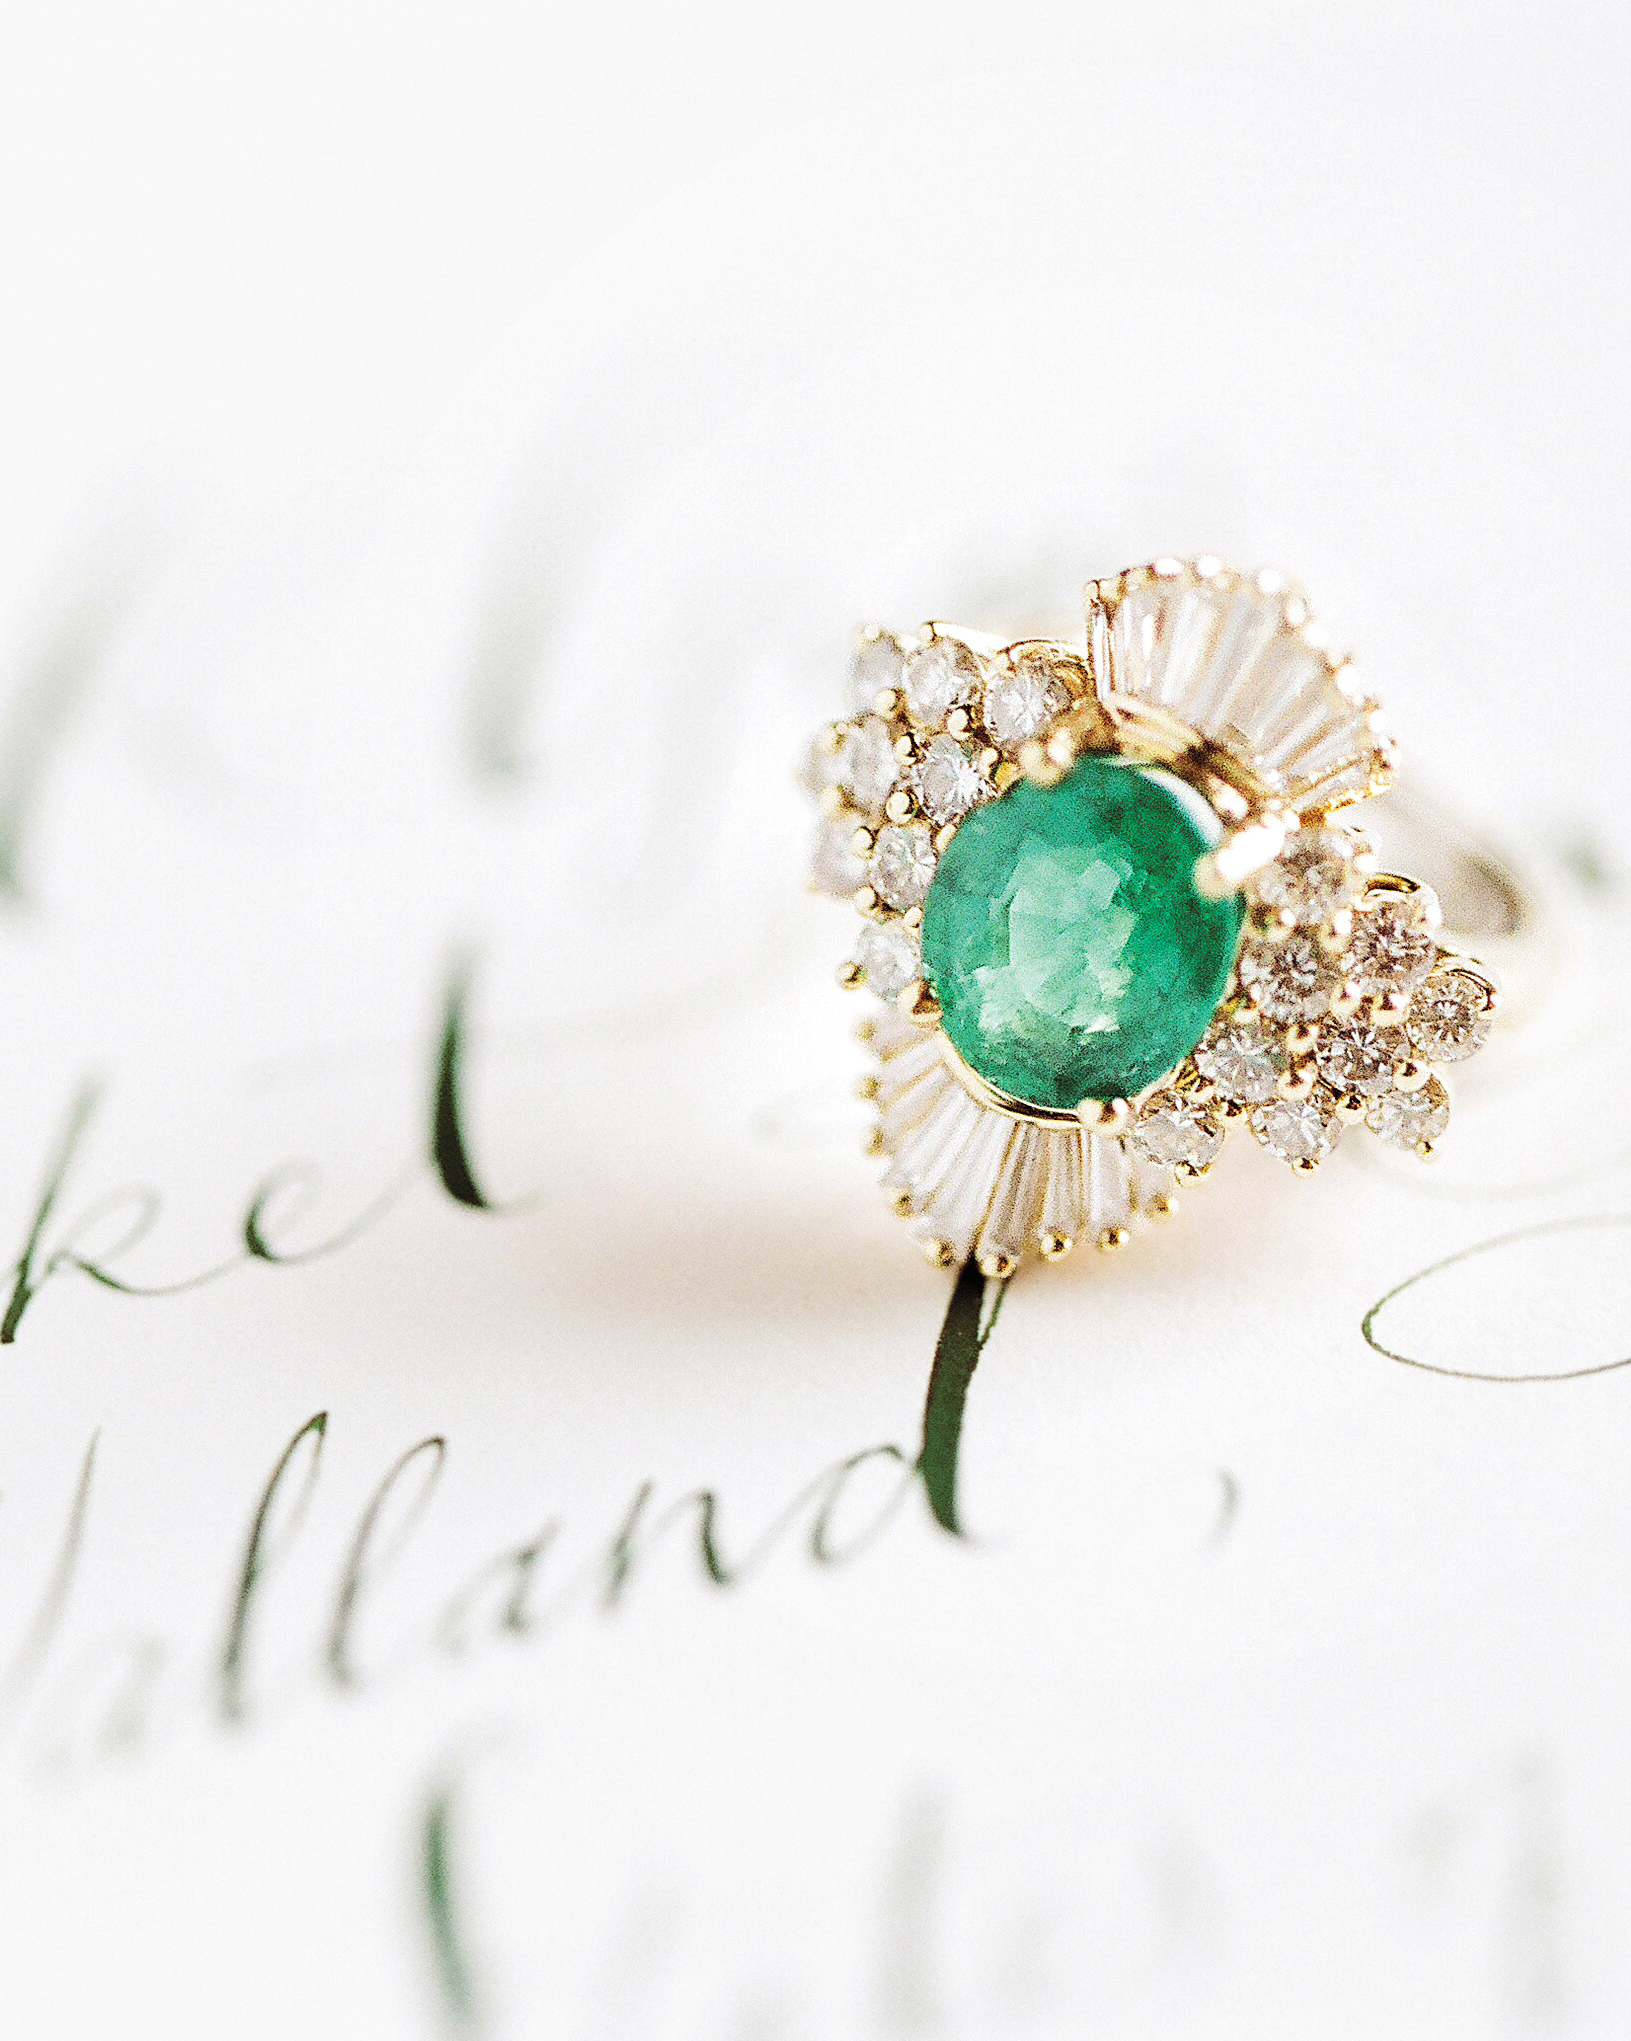 Heirloom Emerald and Diamond Engagement Ring